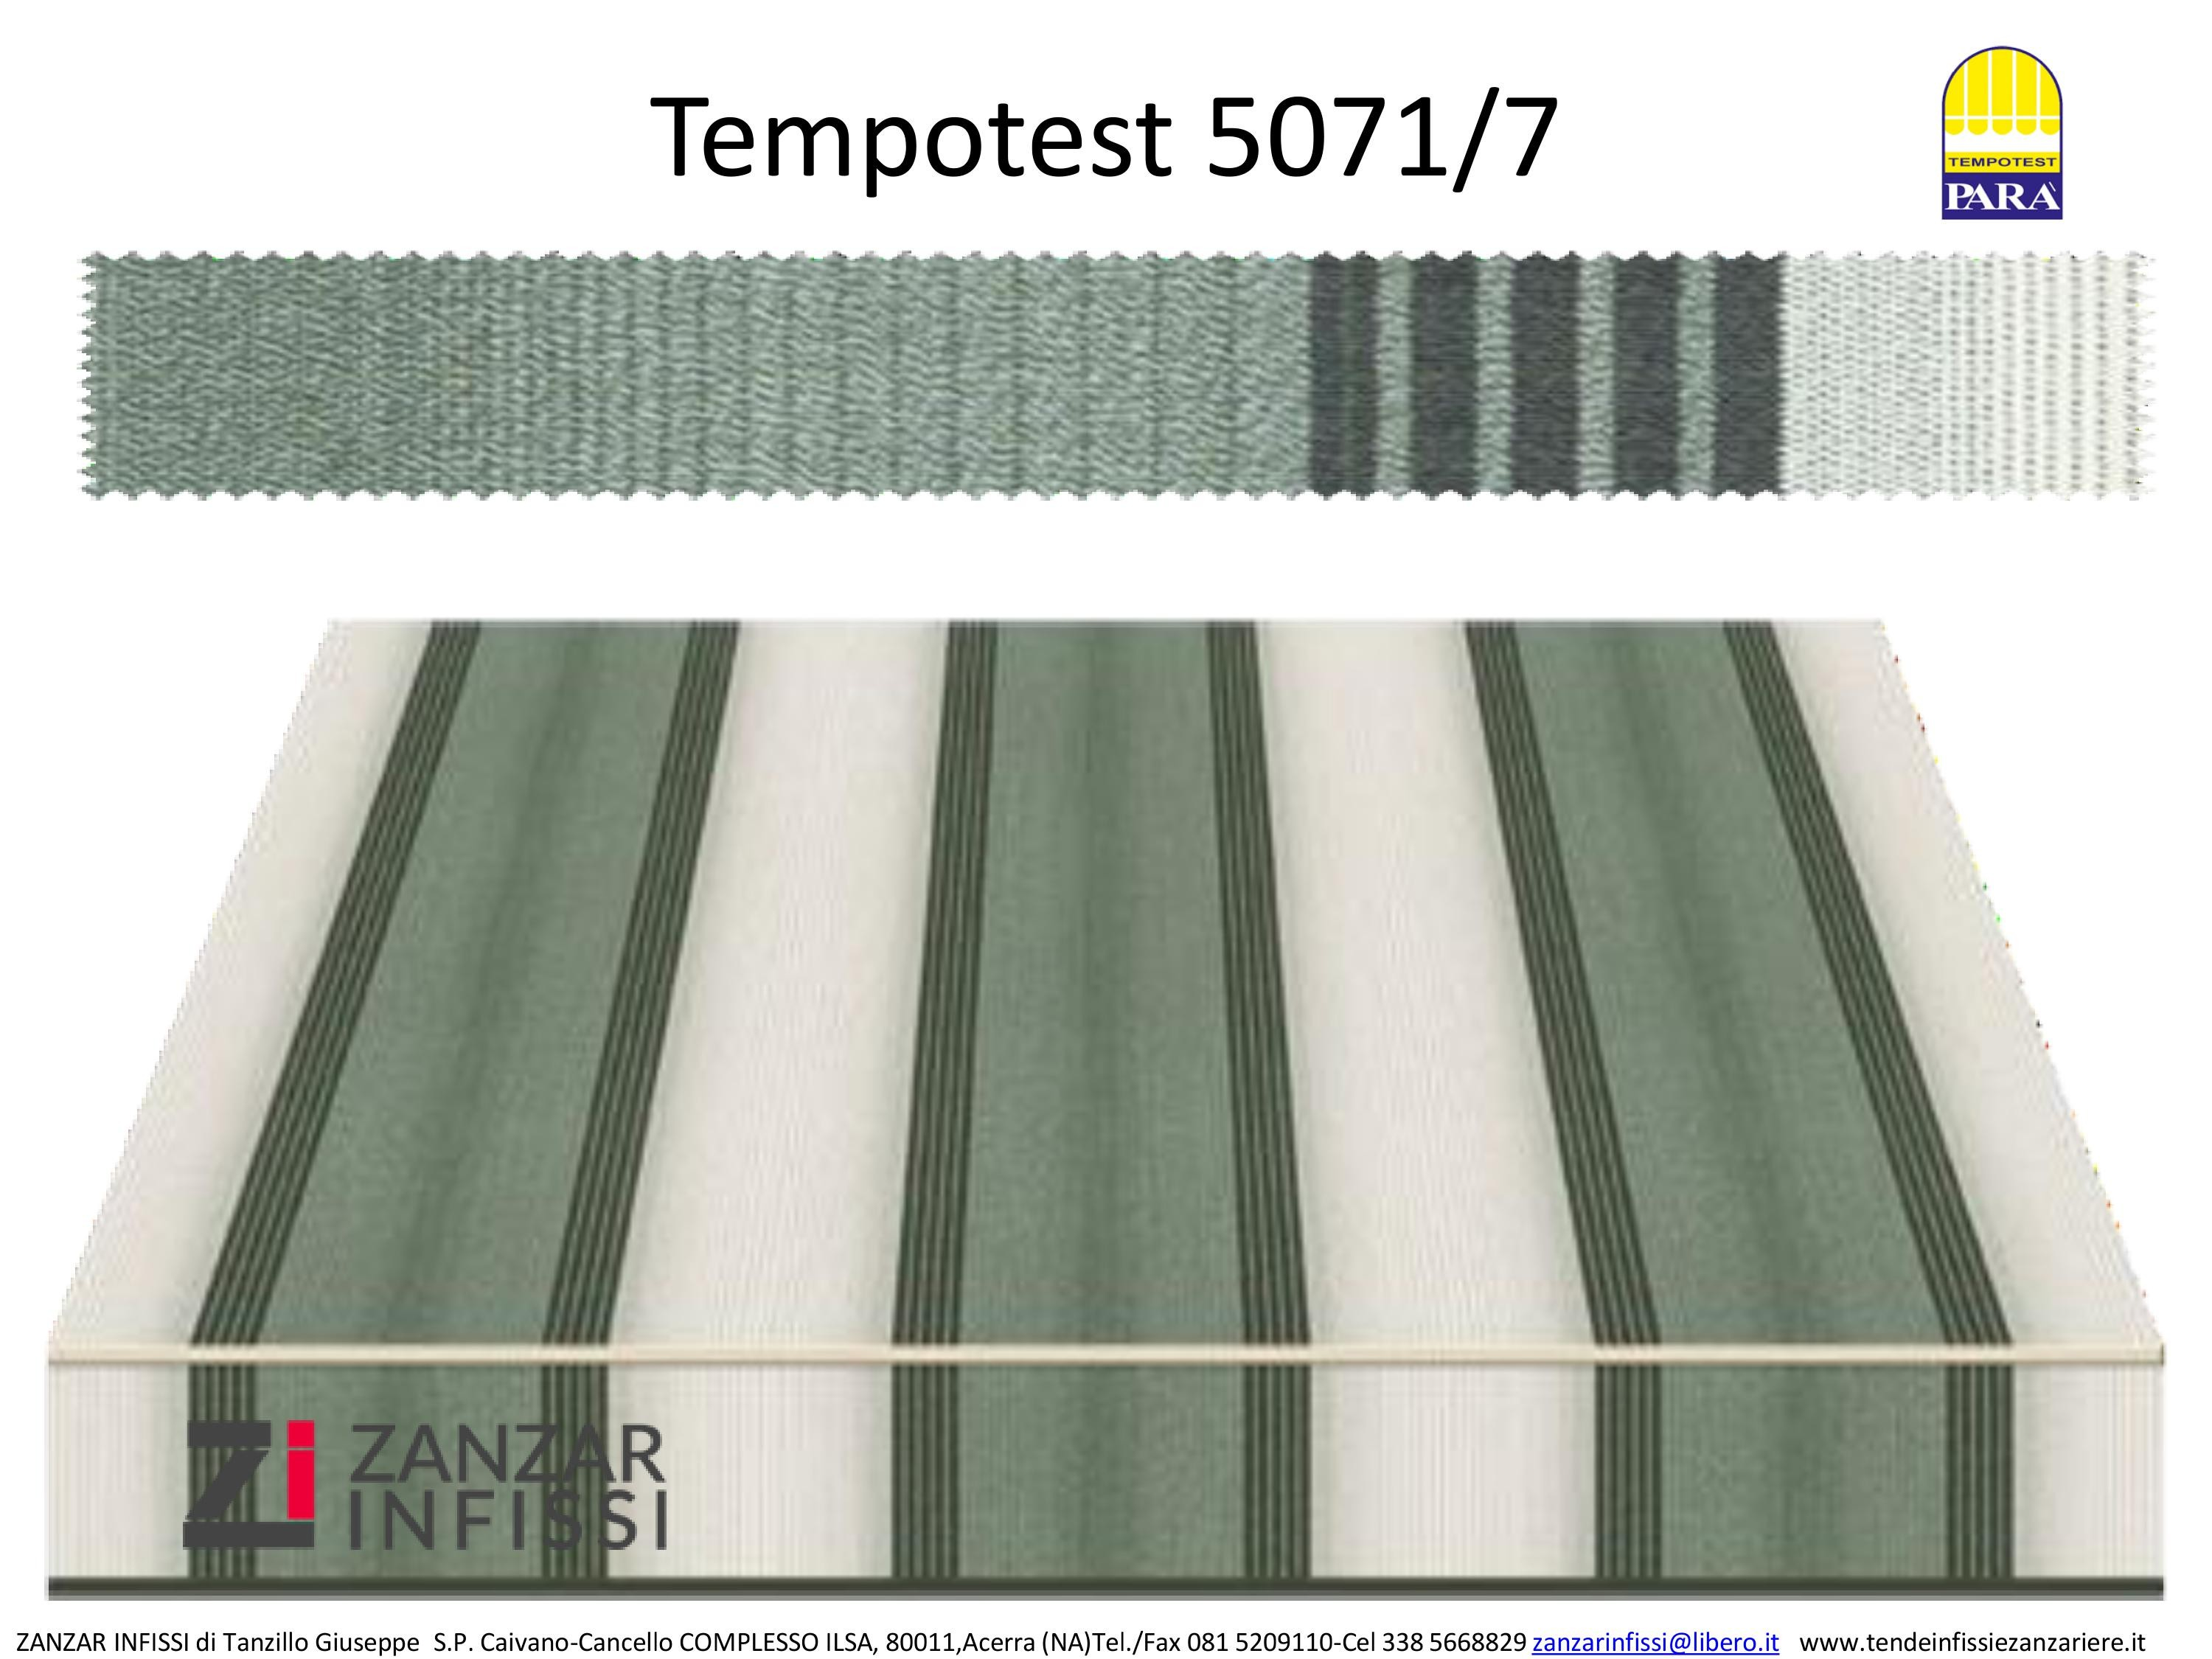 Tempotest 5071/7